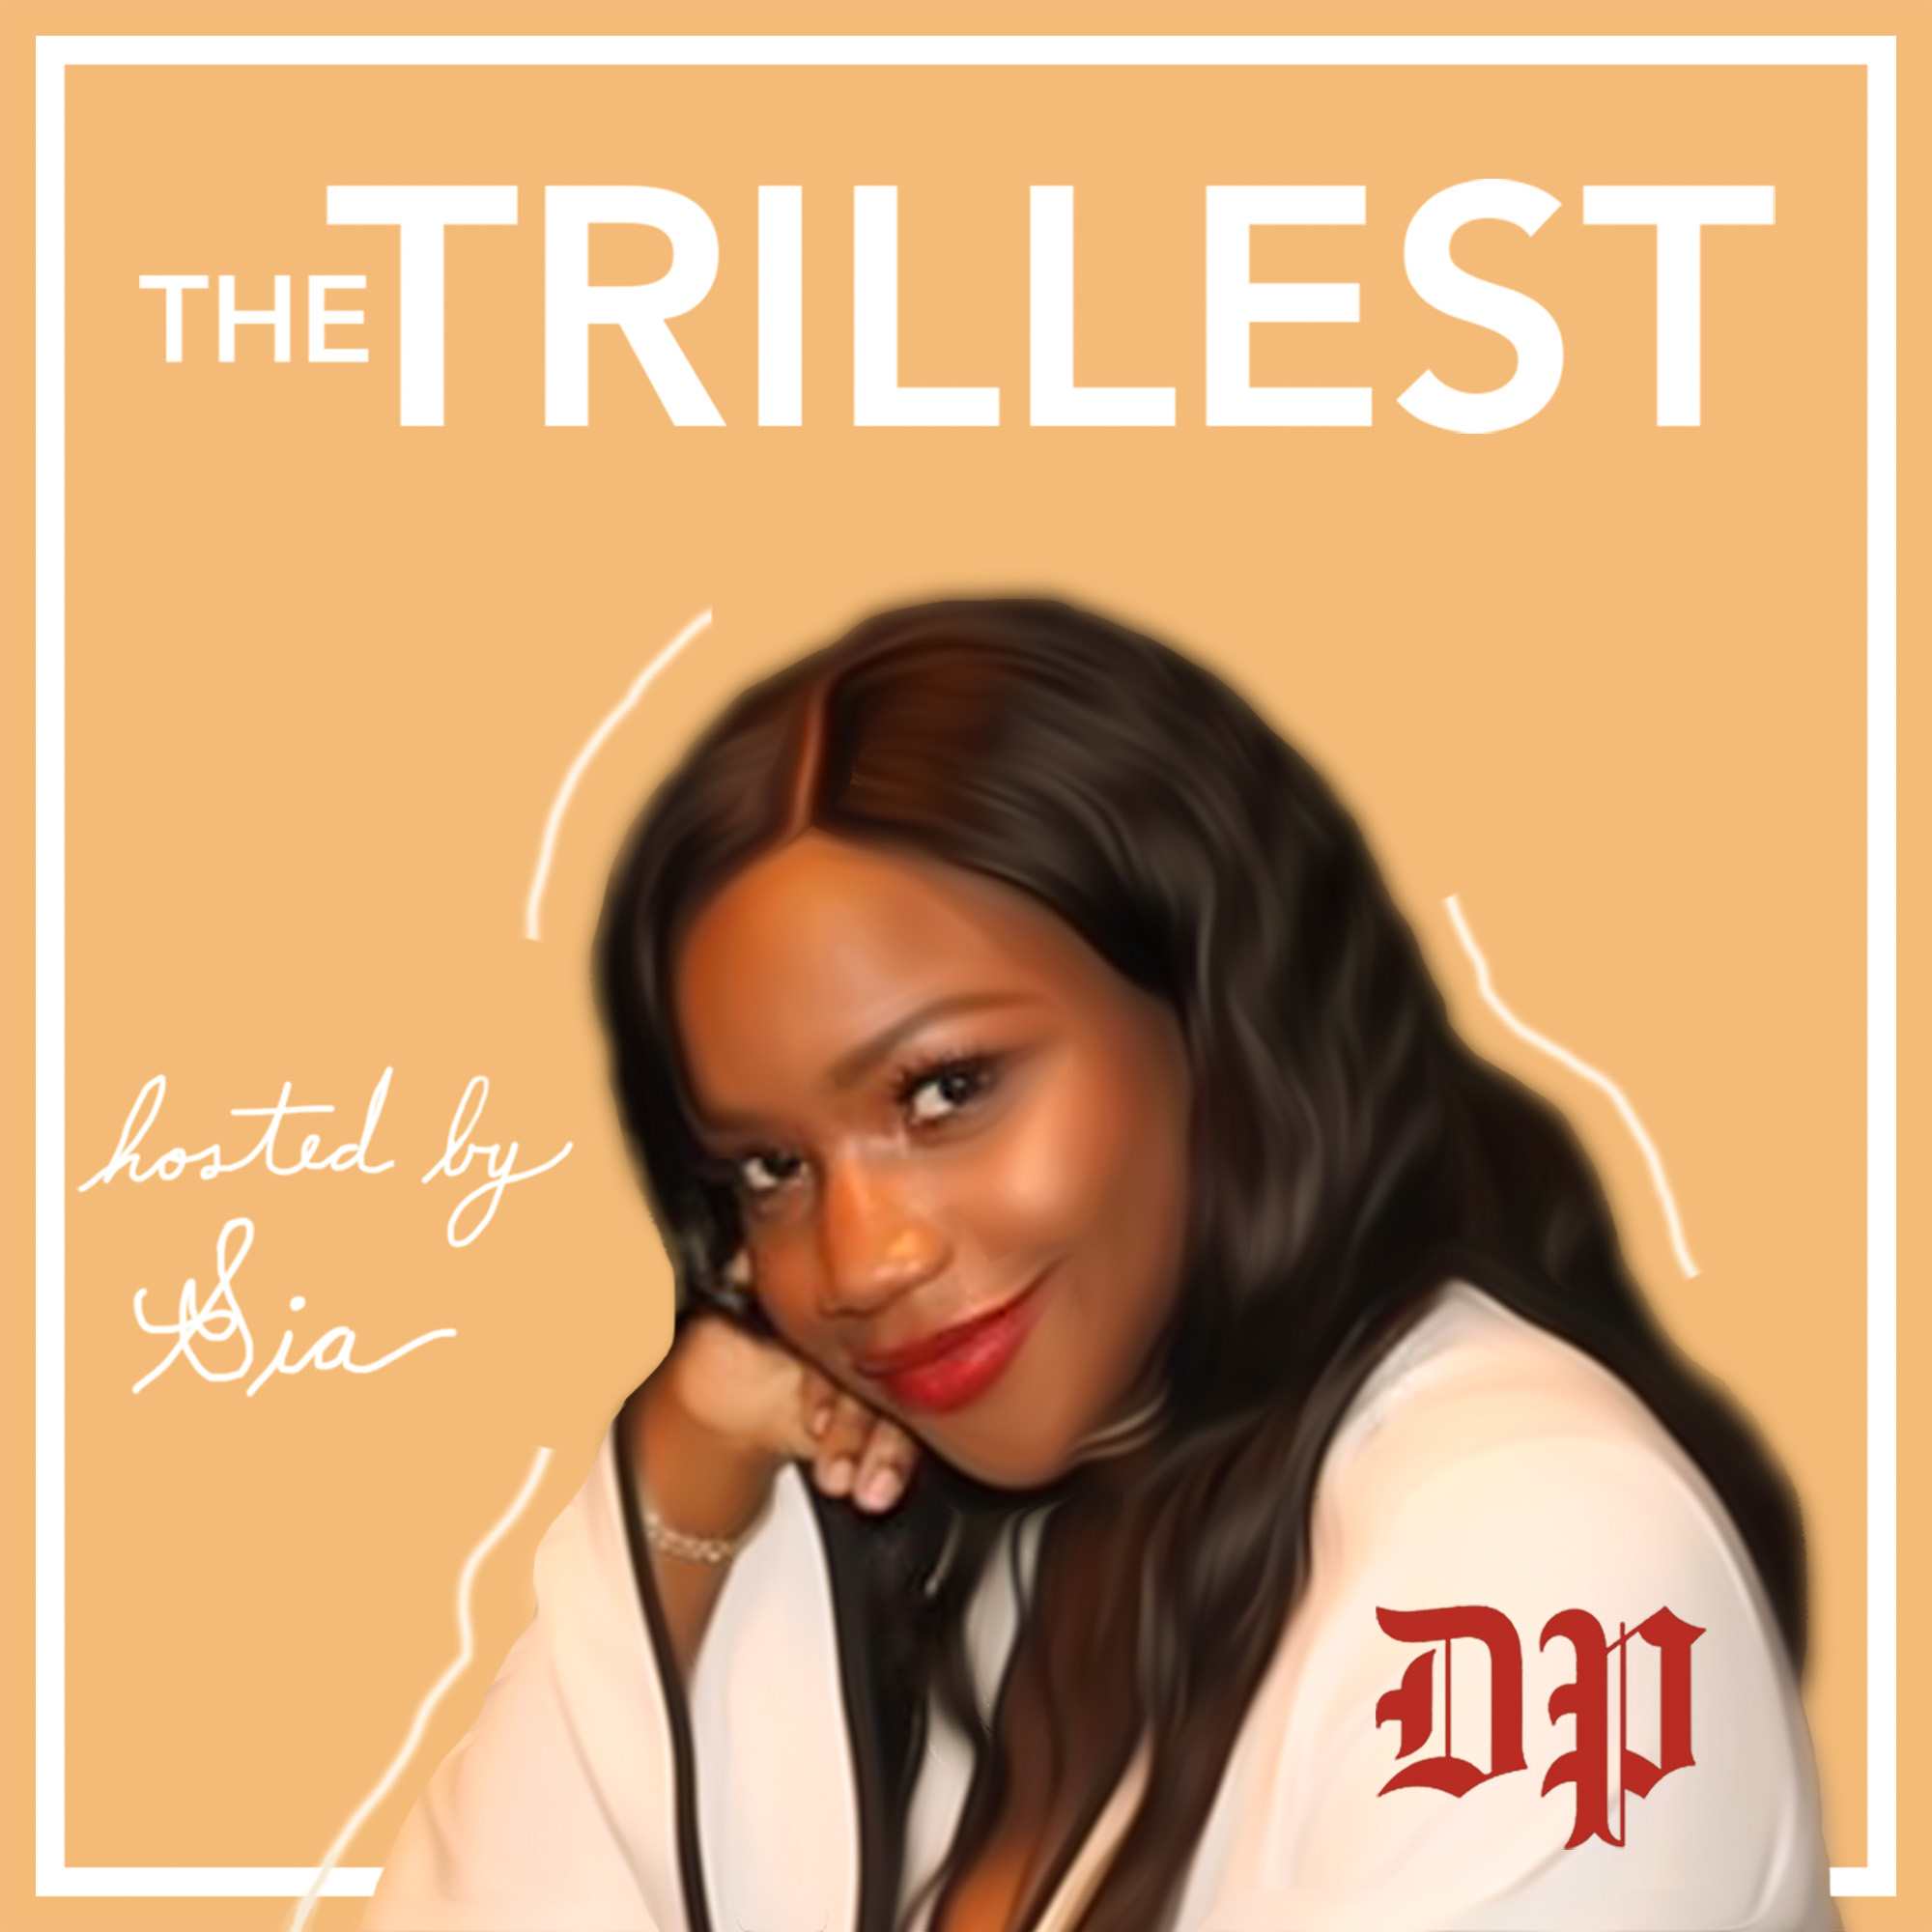 podcast-the-trillest-the-trillest-season-3